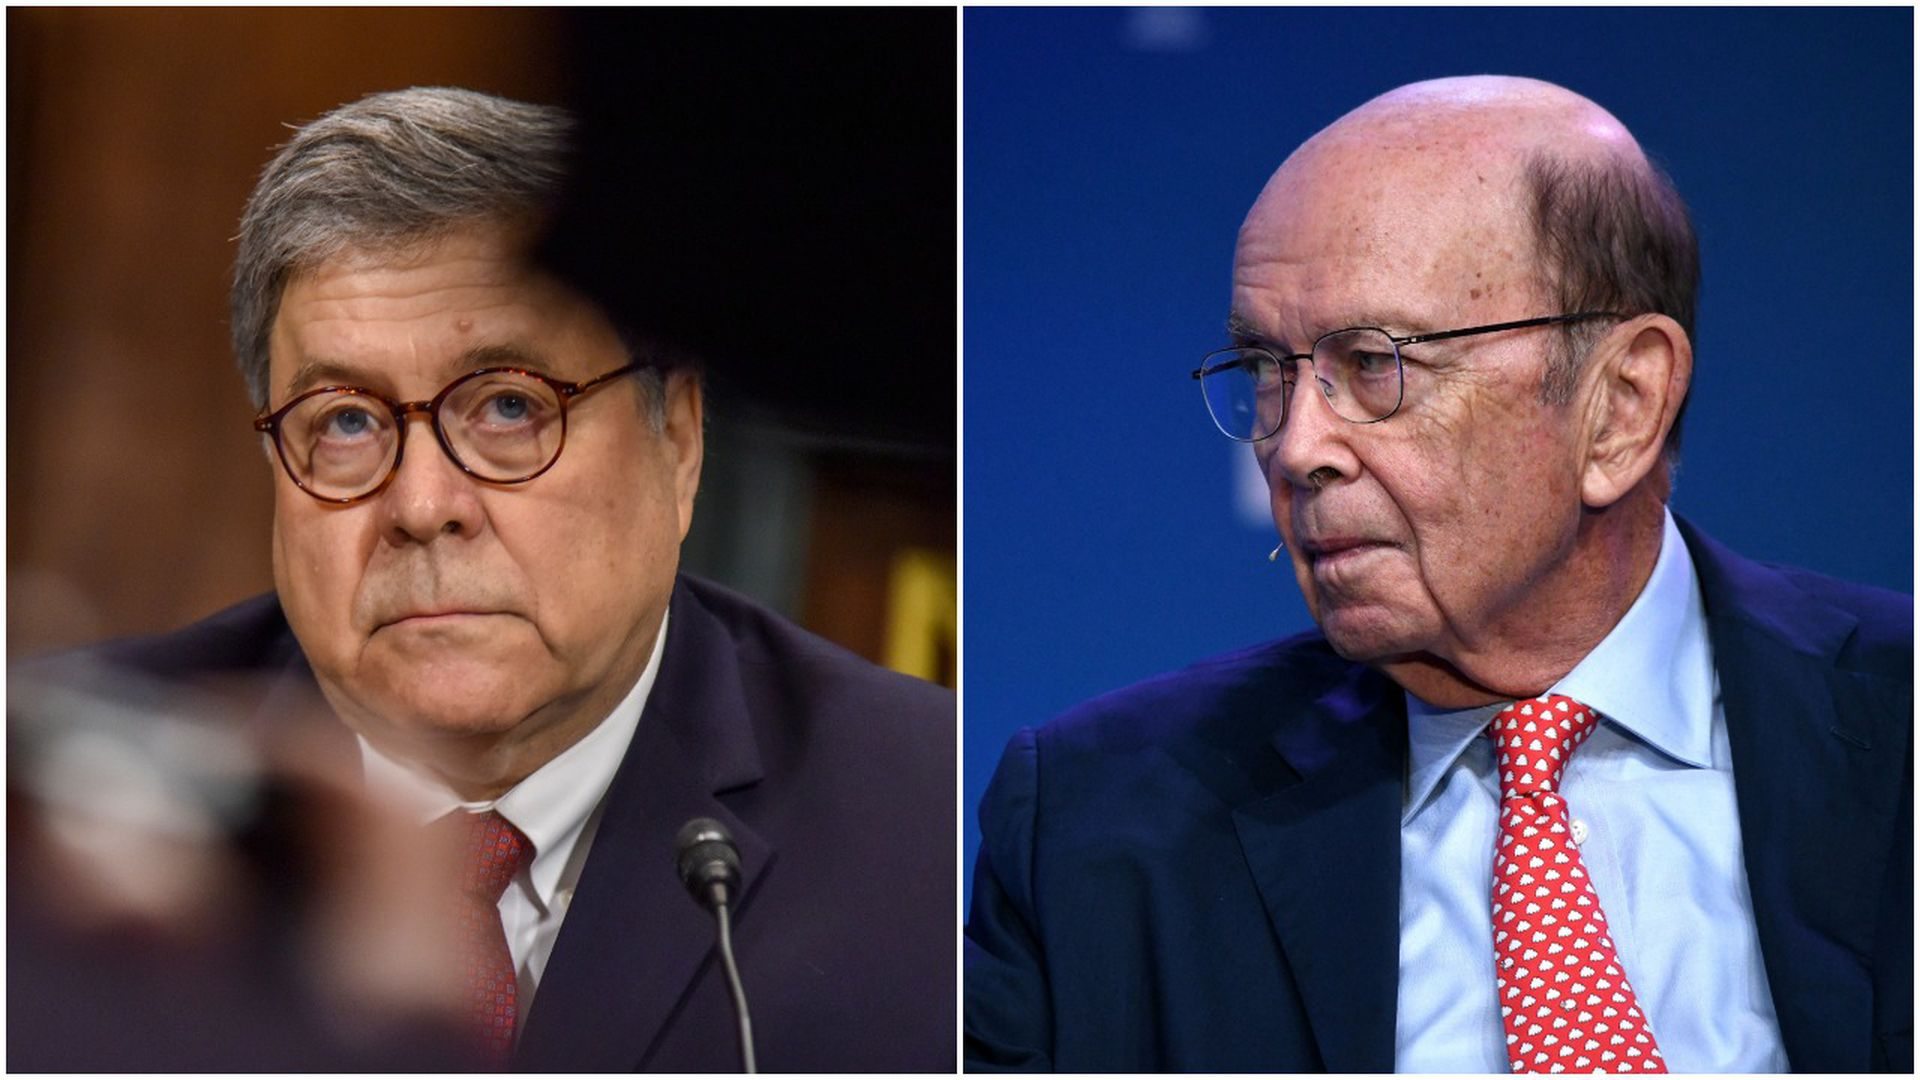 House Oversight holds AG Bill Barr, Wilbur Ross in contempt over Census documents